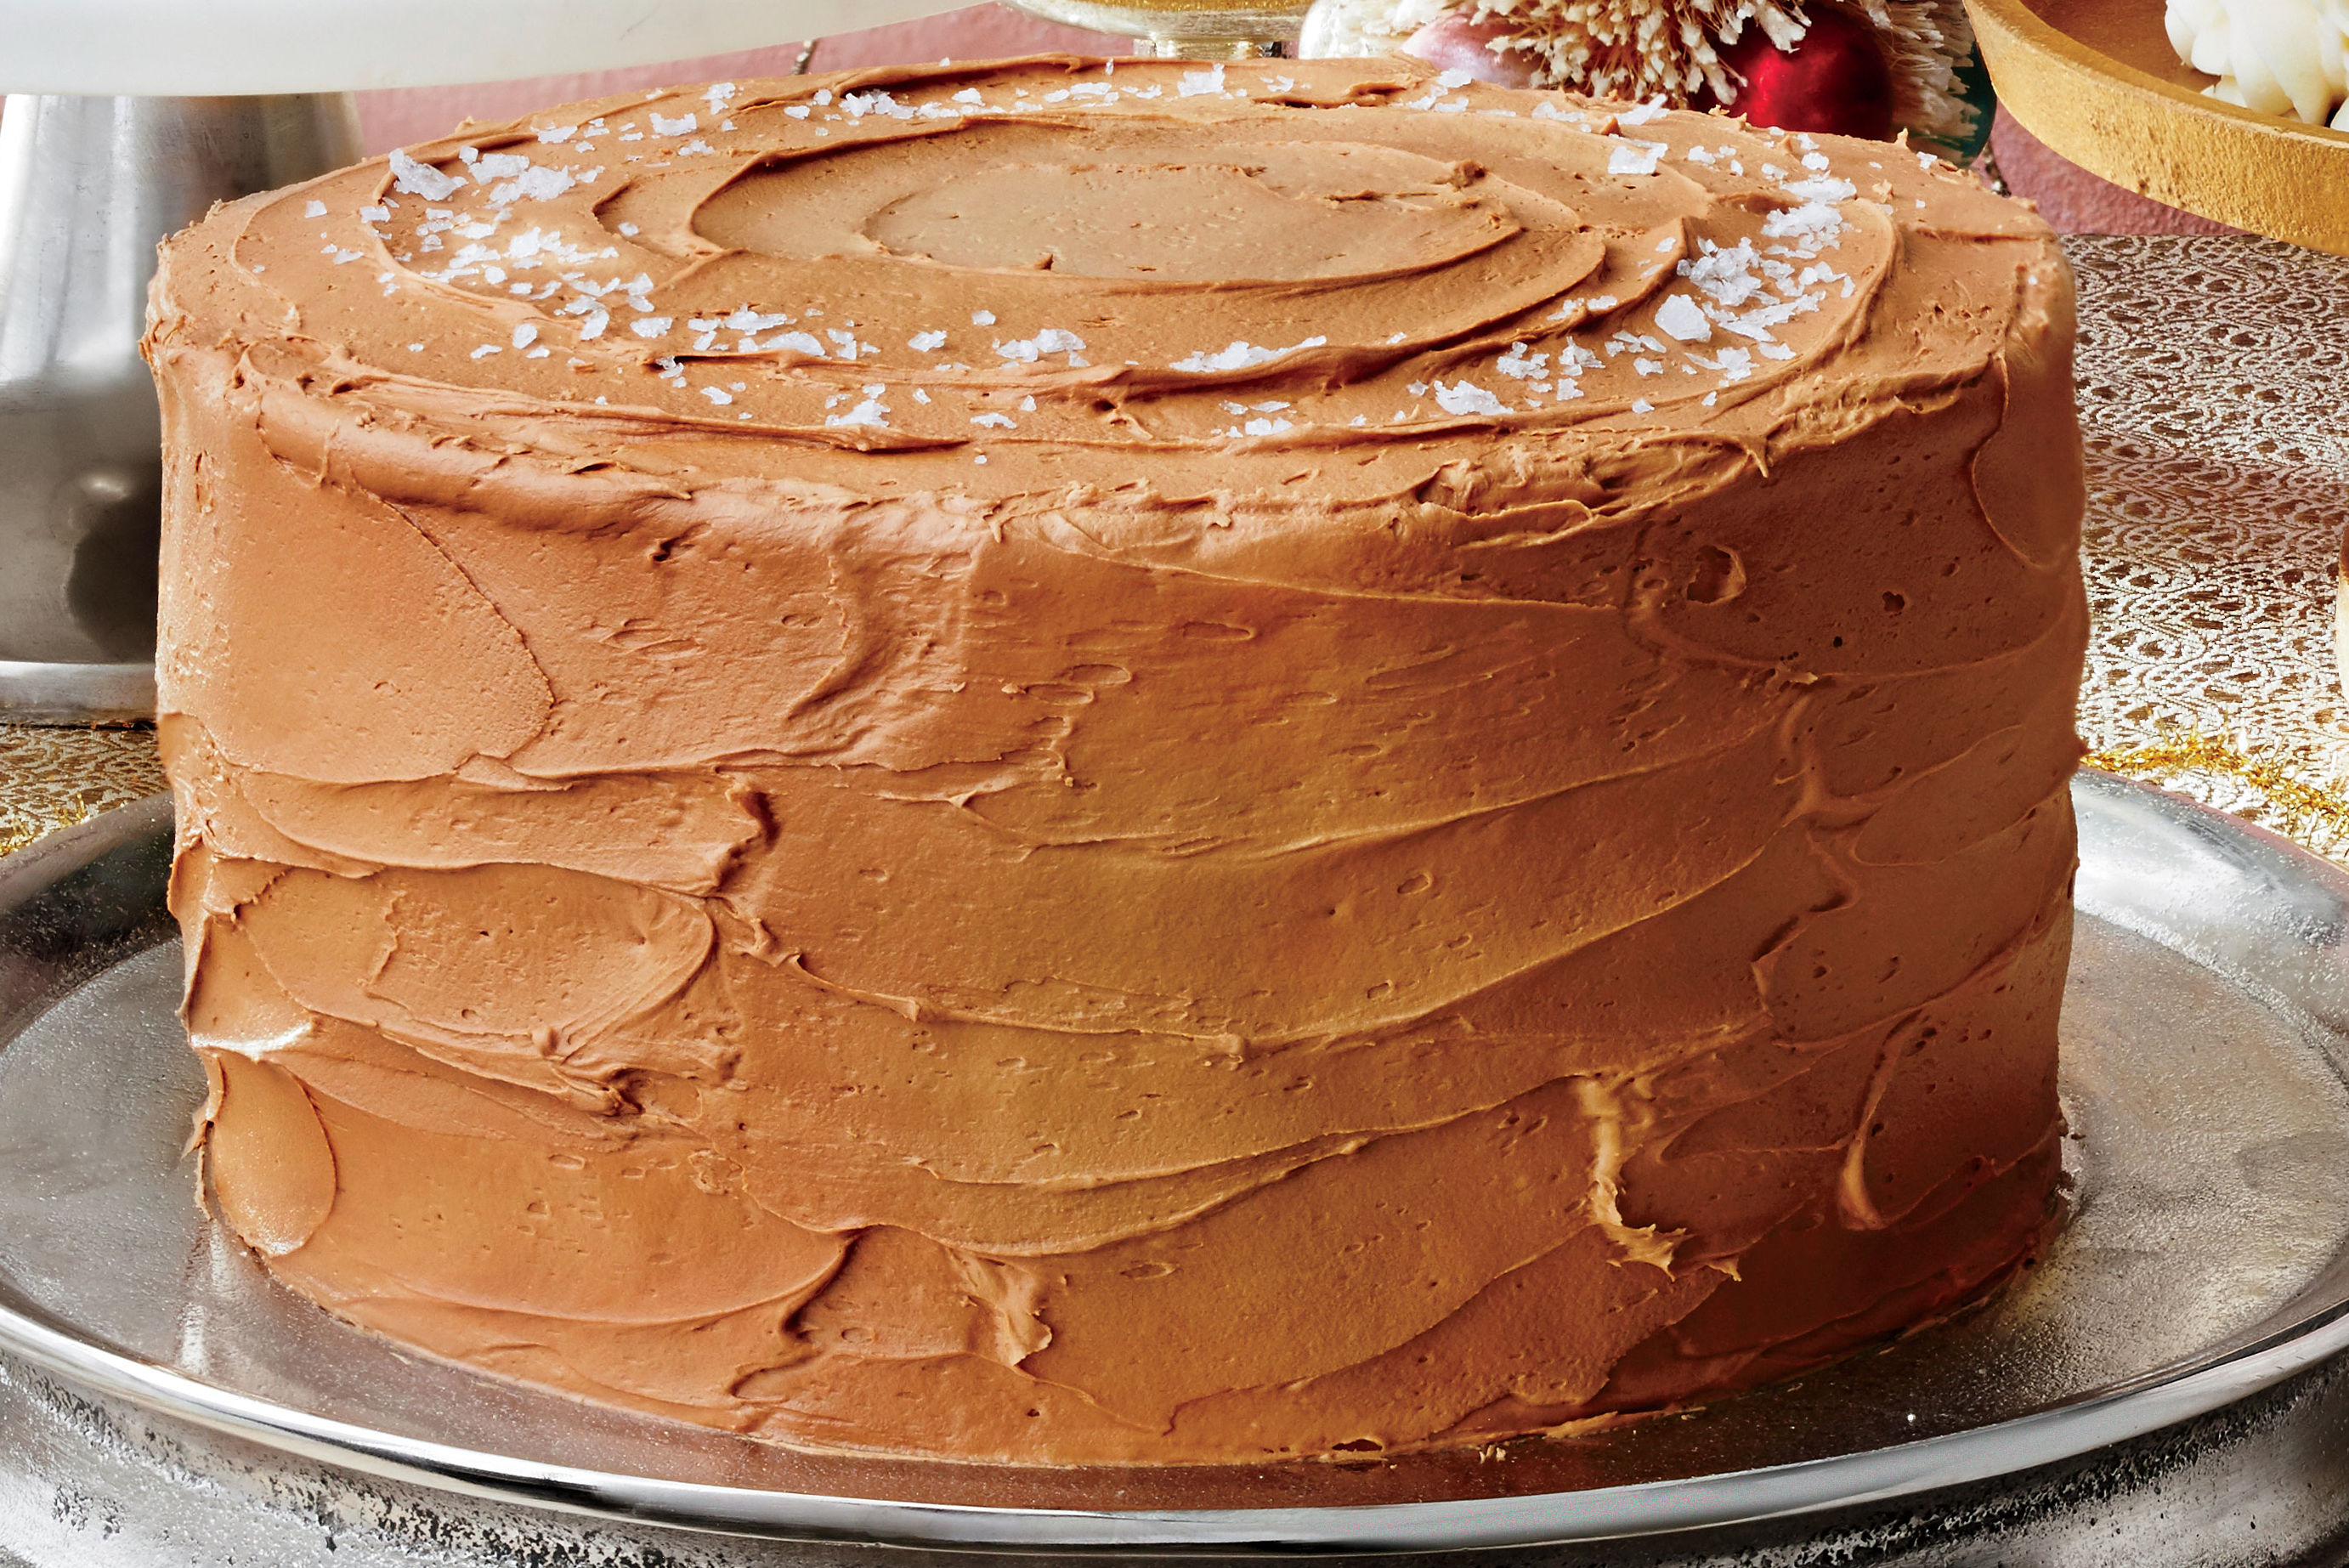 Sea Salt-Caramel Cake Recipe